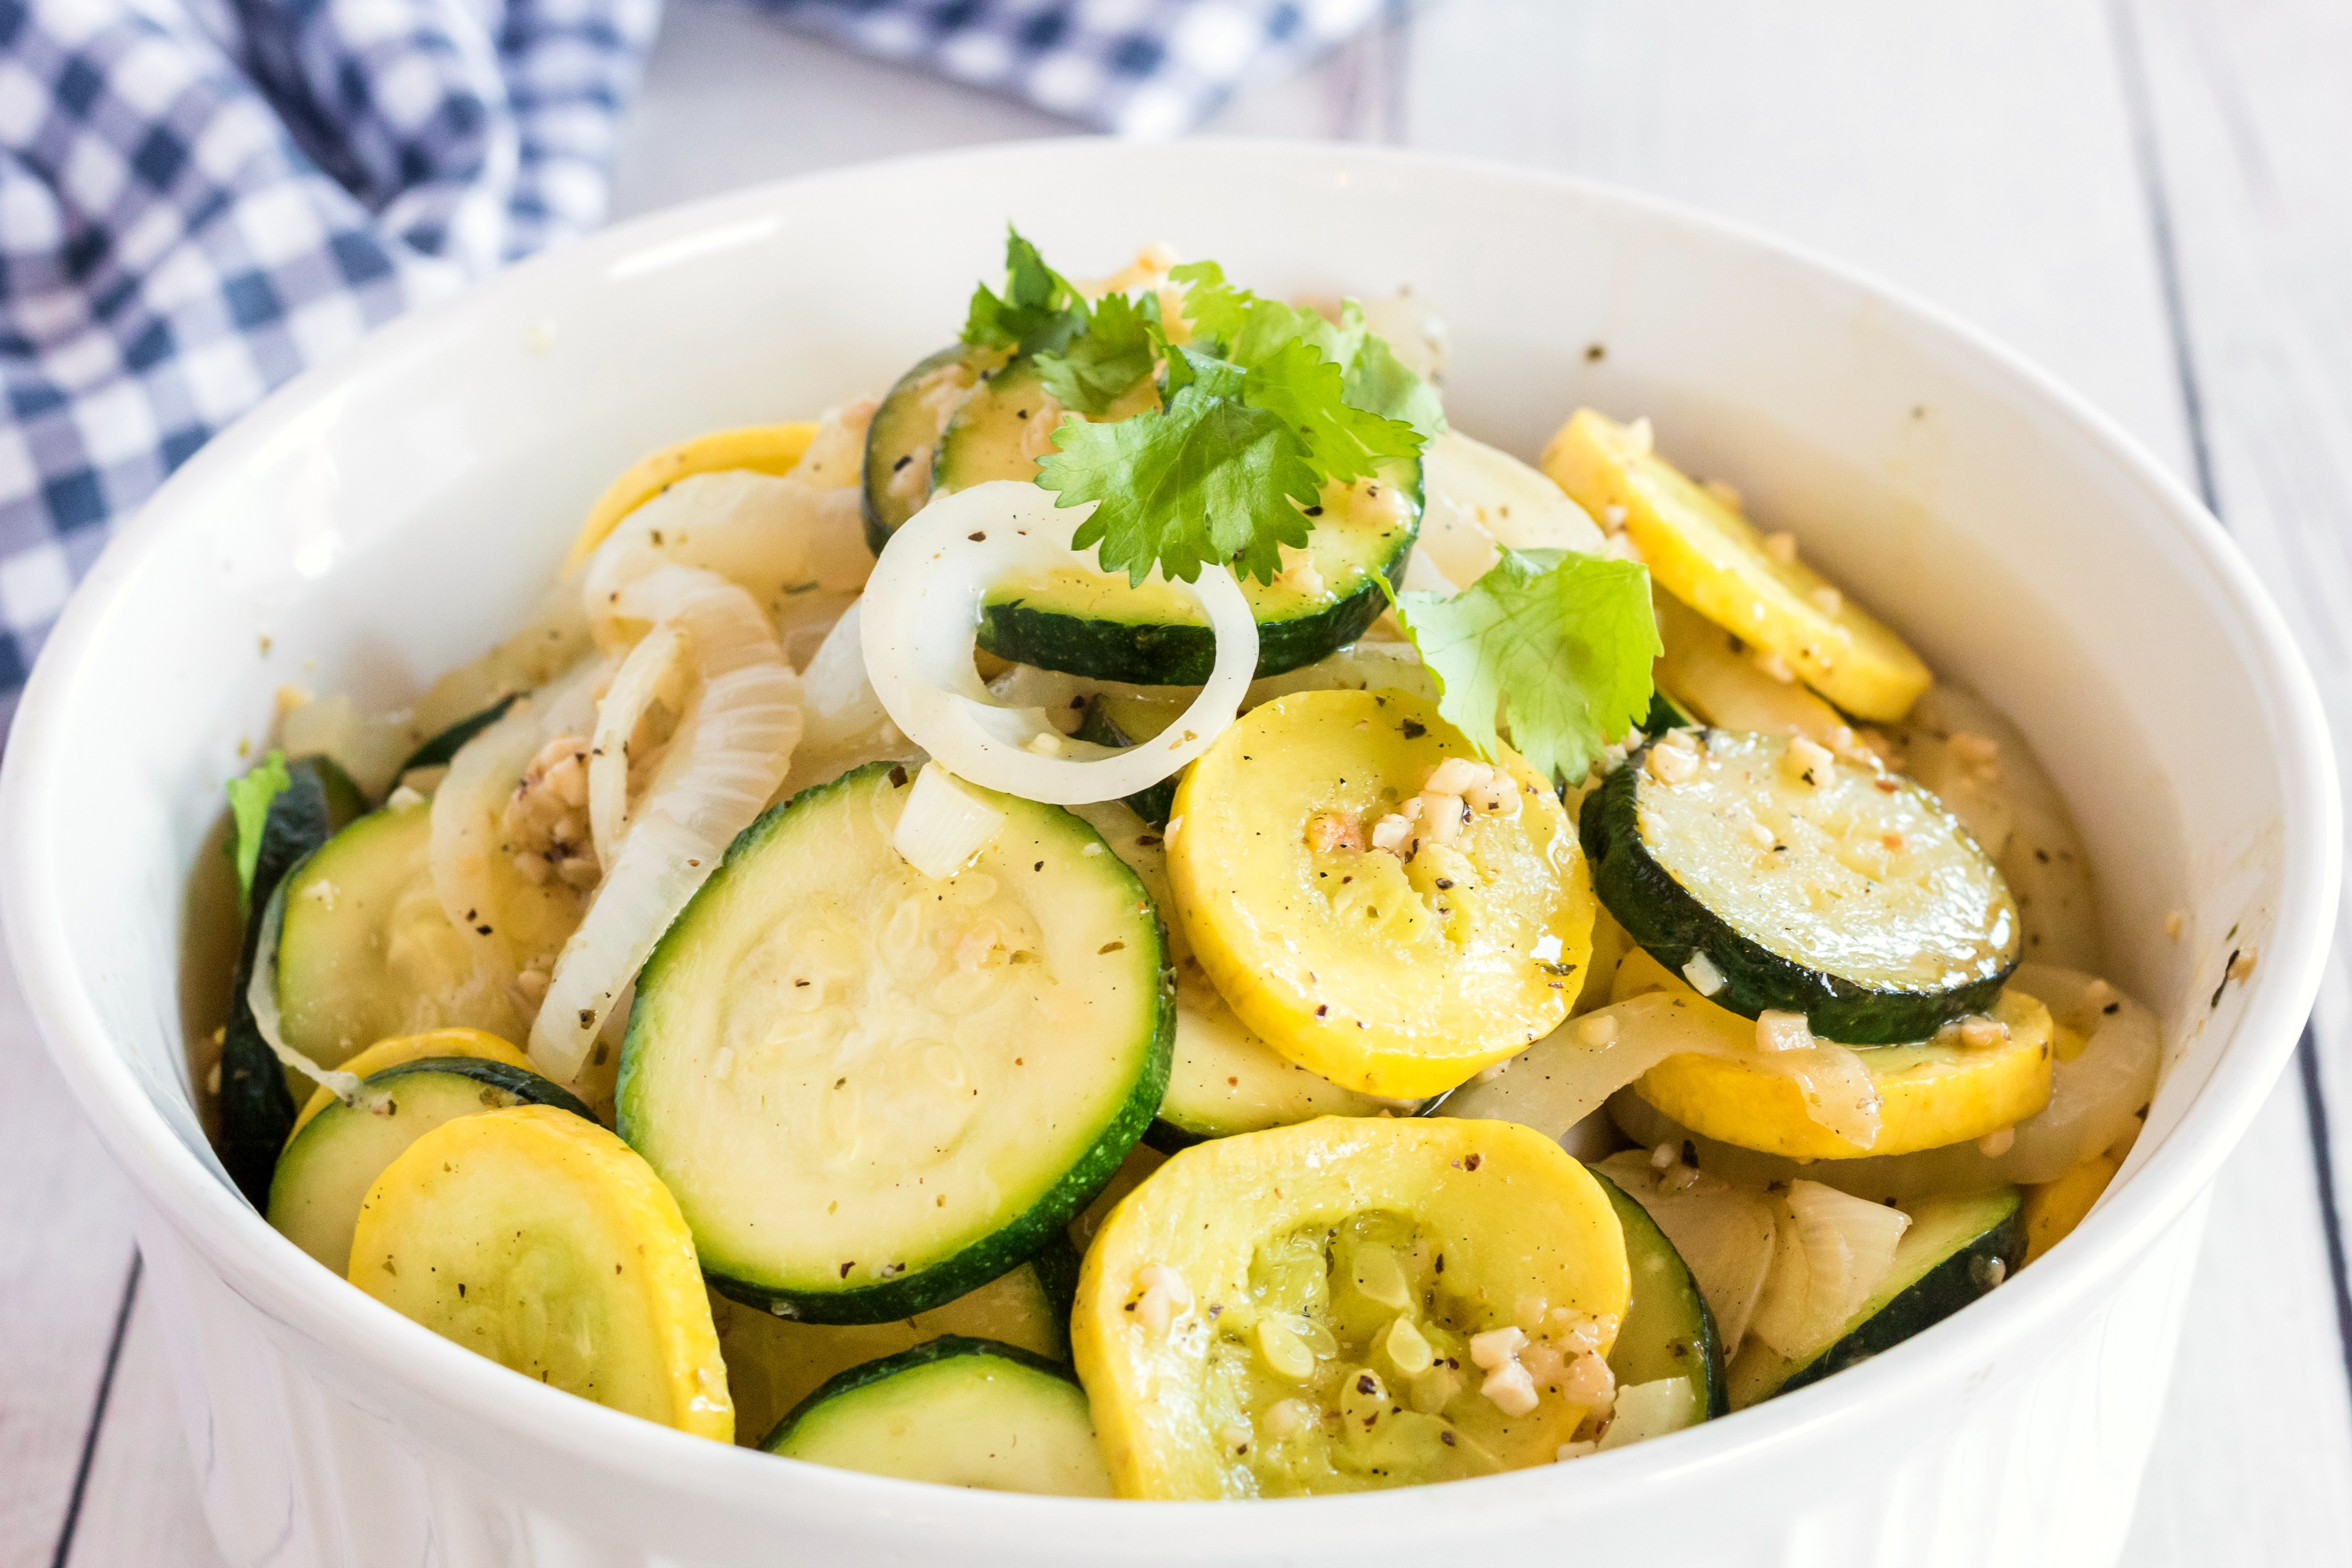 Zucchini with Onions and Garlic